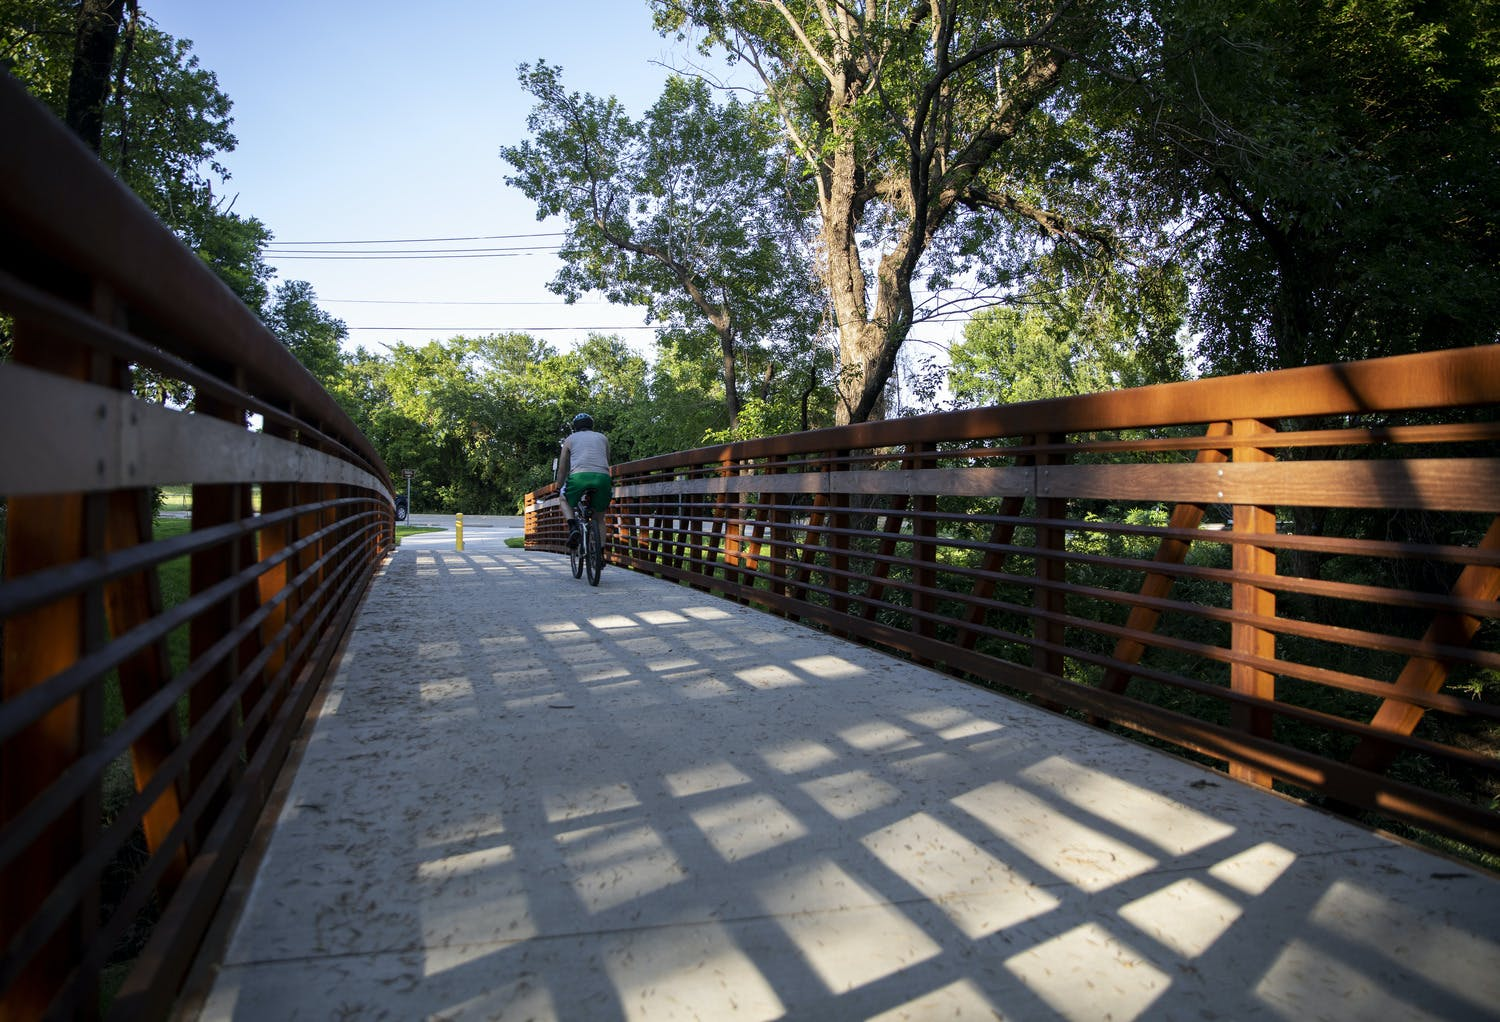 City of Grand Prairie: Fish Creek Linear Trail Expansion